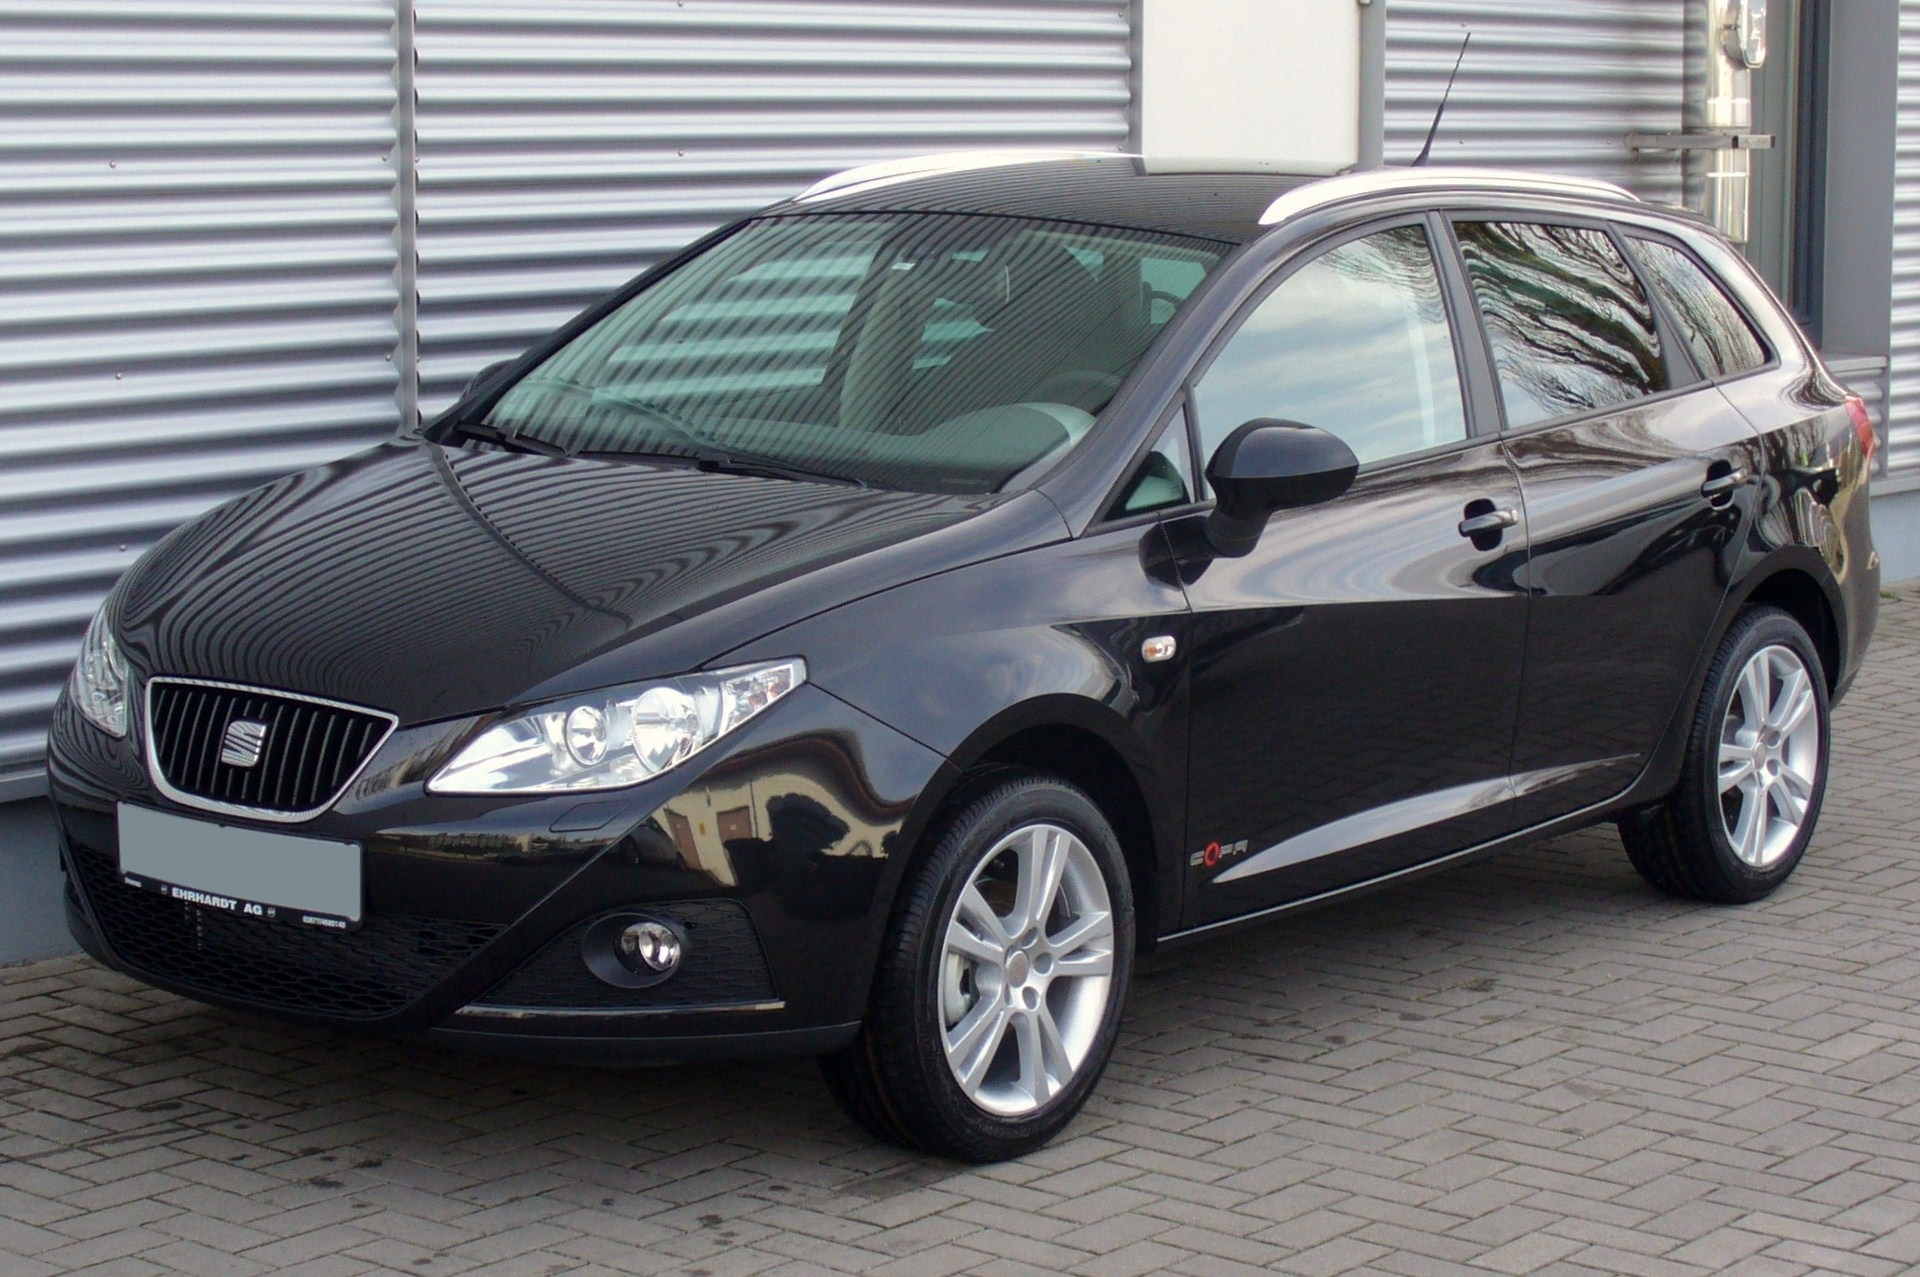 2011 seat ibiza st pictures information and specs. Black Bedroom Furniture Sets. Home Design Ideas